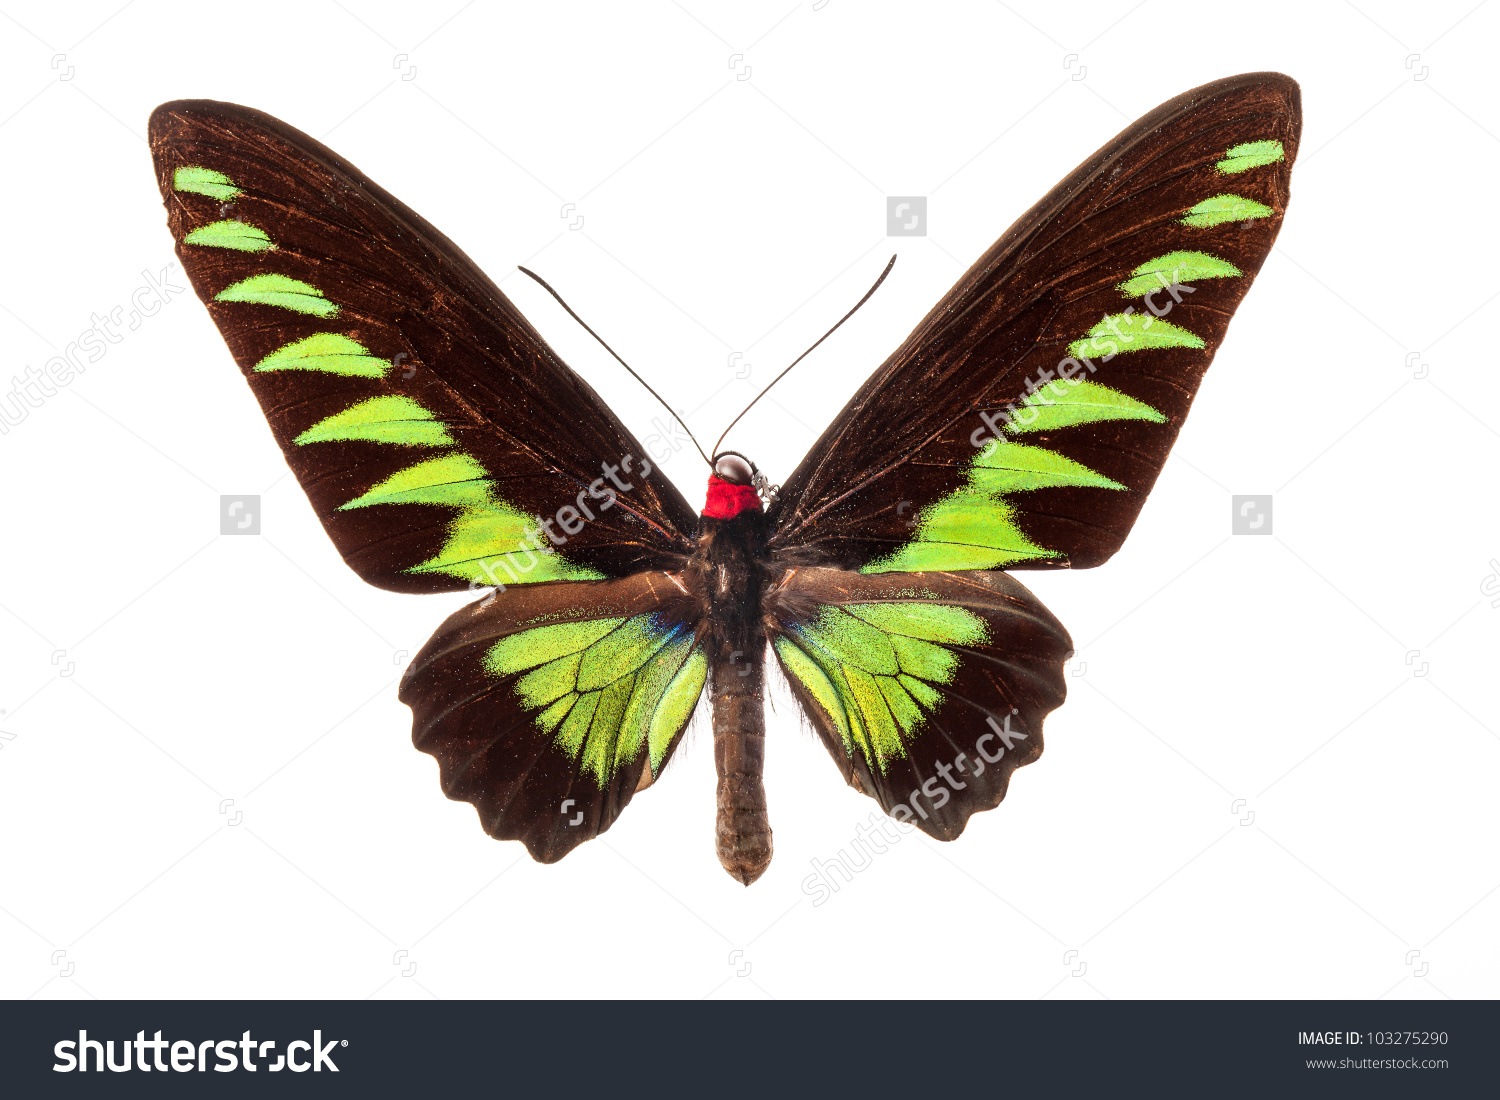 The Rajah Brooke'S Birdwing Butterfly On White Stock Photo.